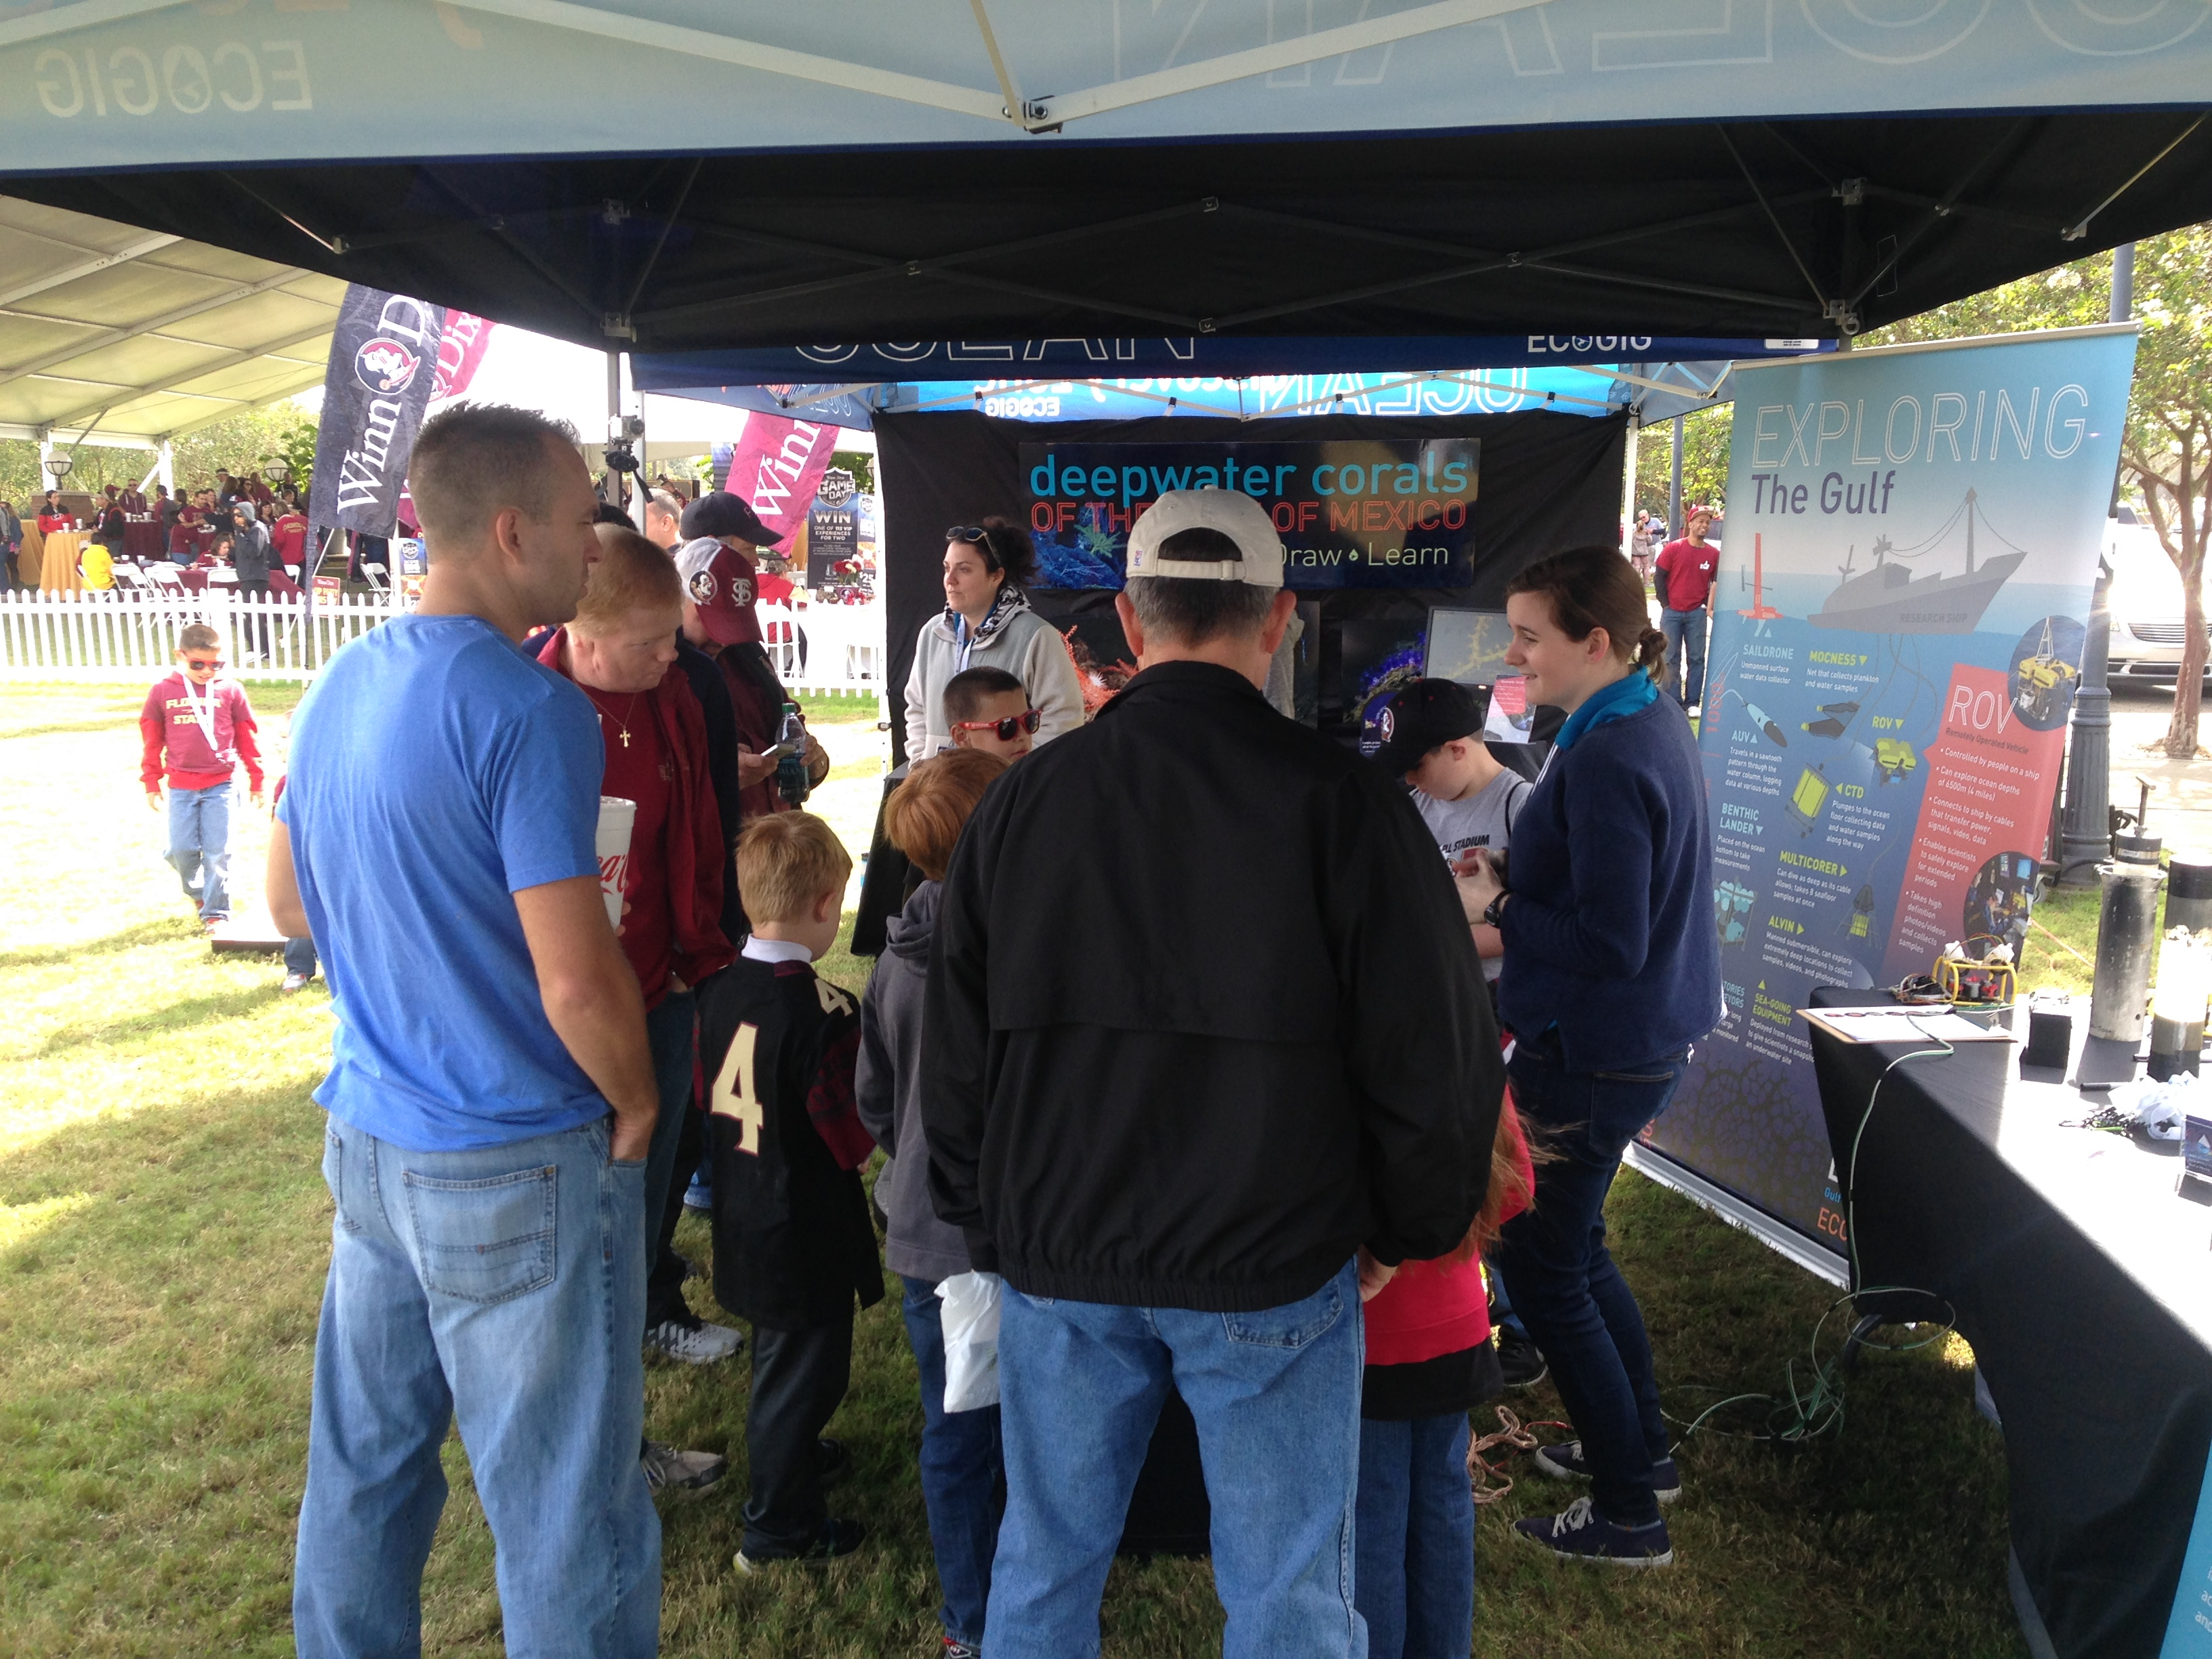 <div style='color:#000000;'><br /><br /><h2>Florida State University 2015 homecoming tailgate- We enjoyed all the visitors who stopped by the Ocean Discovery Zone- our ROV tank was a hit!</h2>(C)&nbsp;ECOGIG</div>